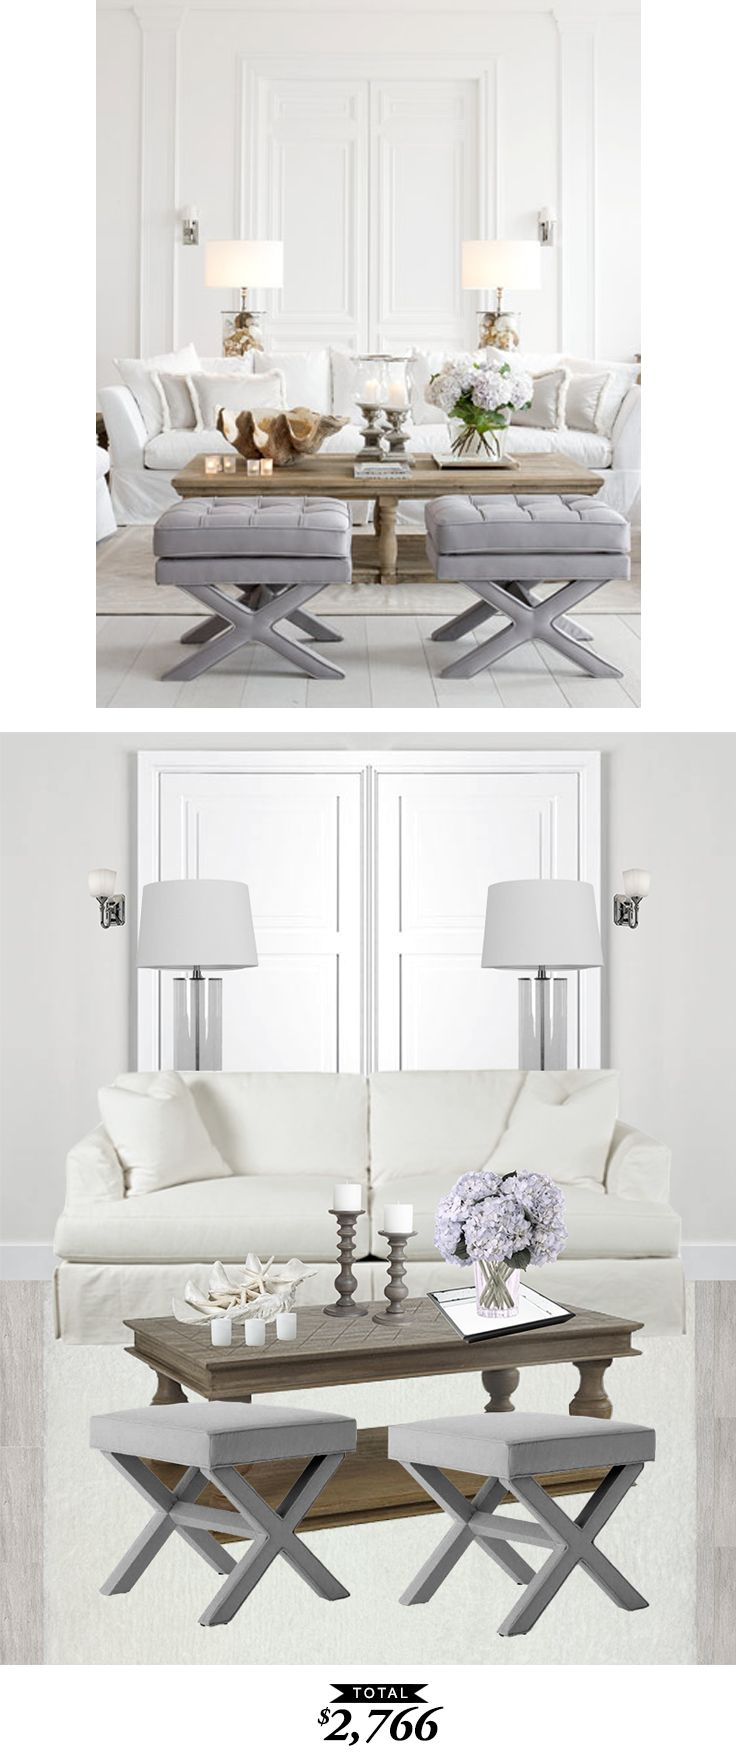 145 Best Living Room Decorating Ideas Designs: 1234 Best Images About Living Room On Pinterest